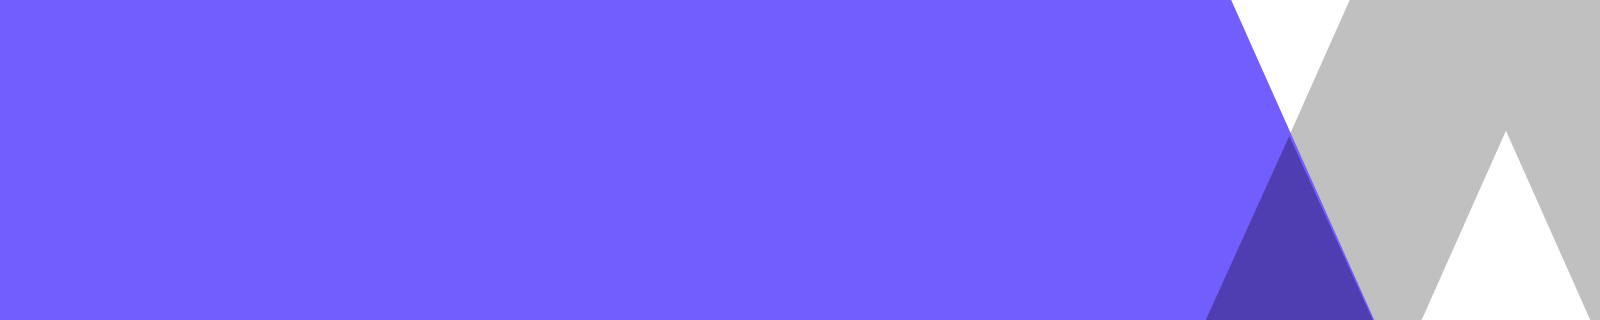 purple-marquee-short-2-1600x320